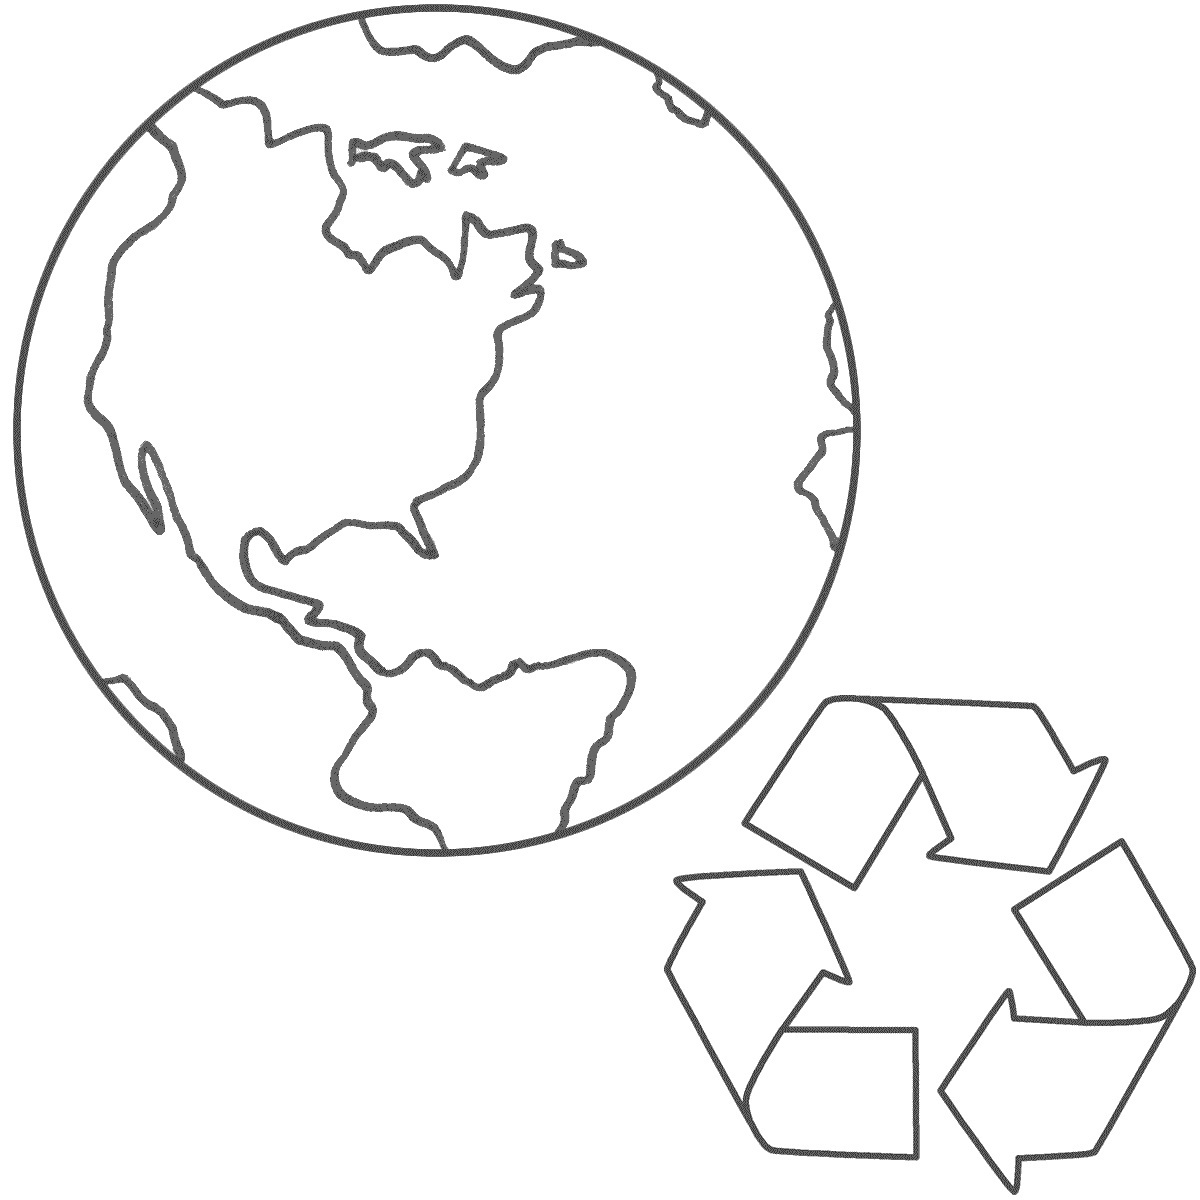 planet earth coloring page earth planet coloring pages printable planet coloring earth page